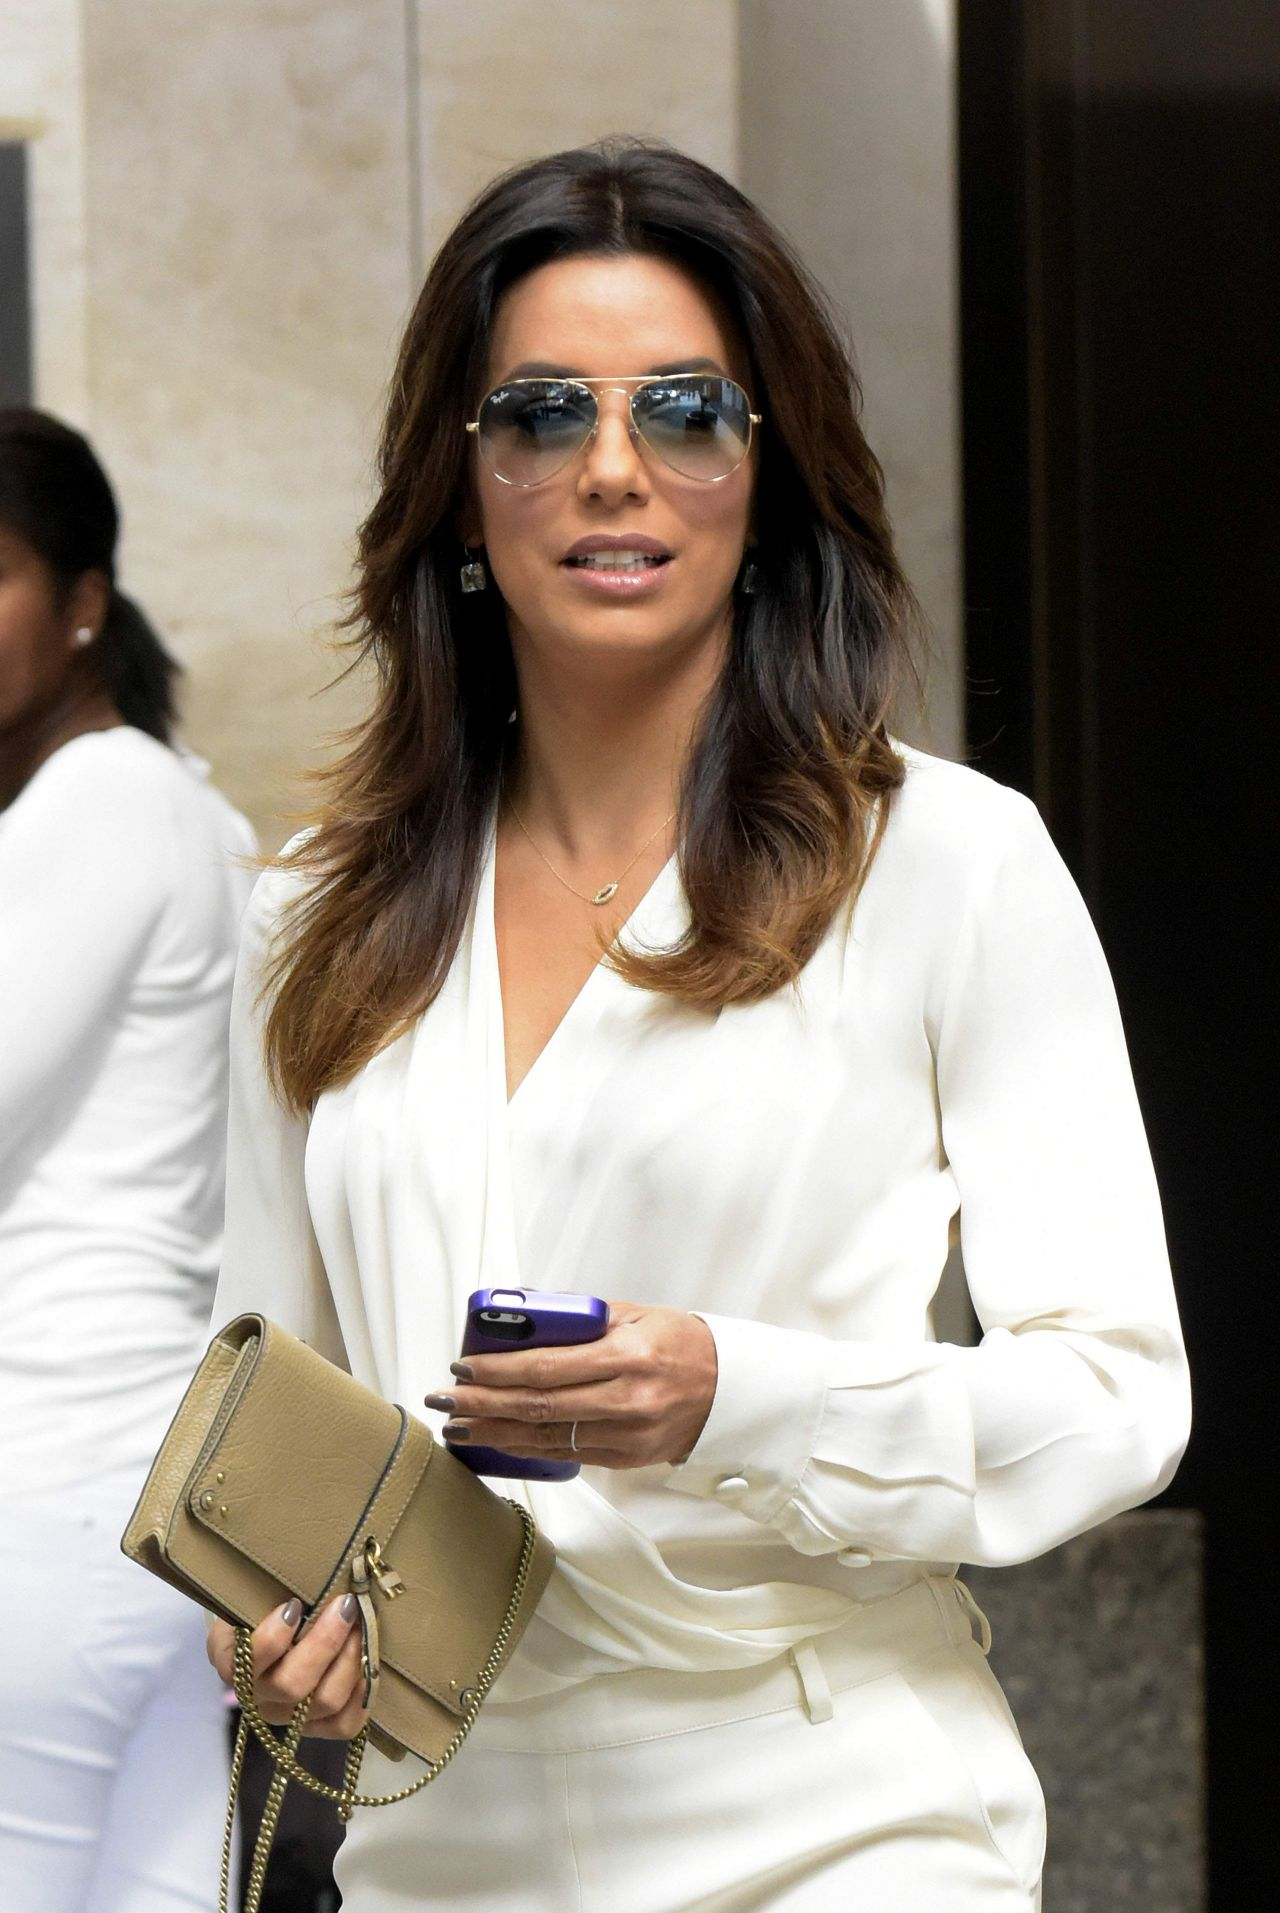 Eva Longoria Exiting the Four Seasons Hotel in New York City - September 2014